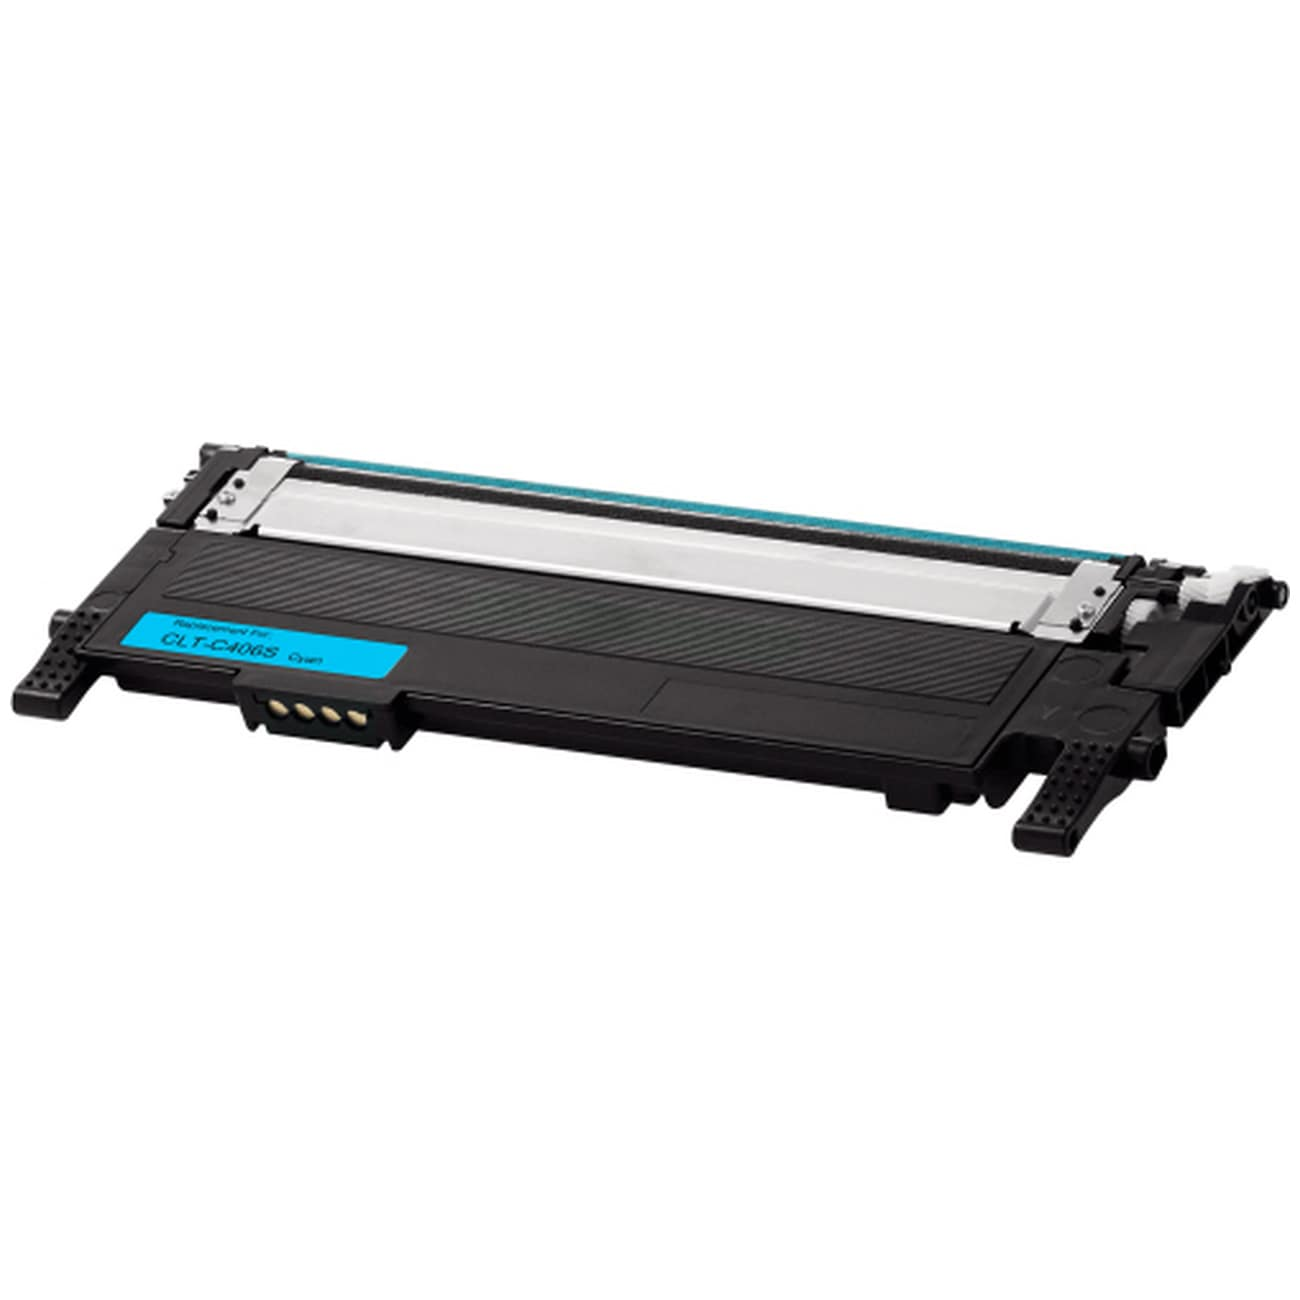 CLT-C406S Toner Cartridge - Samsung Remanufactured (Cyan)